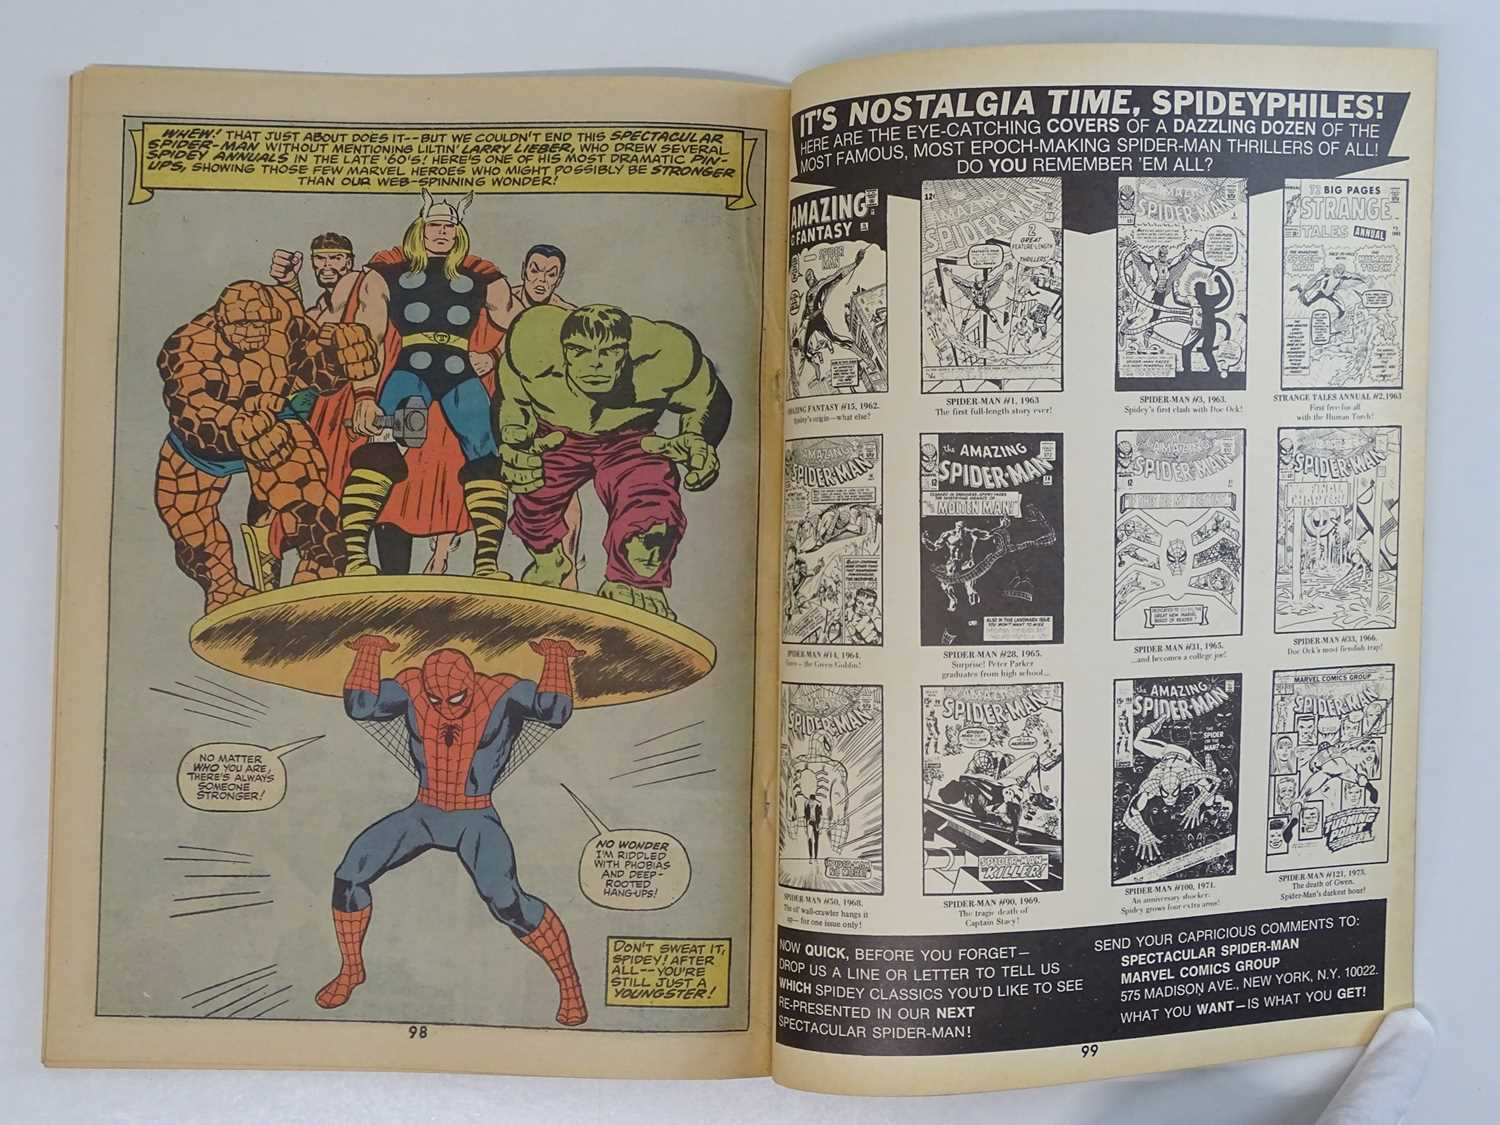 Marvel Treasury Edition #1 Spectacular Spider-Man (Marvel - 1974) Includes Gil Kane and Steve - Image 6 of 8